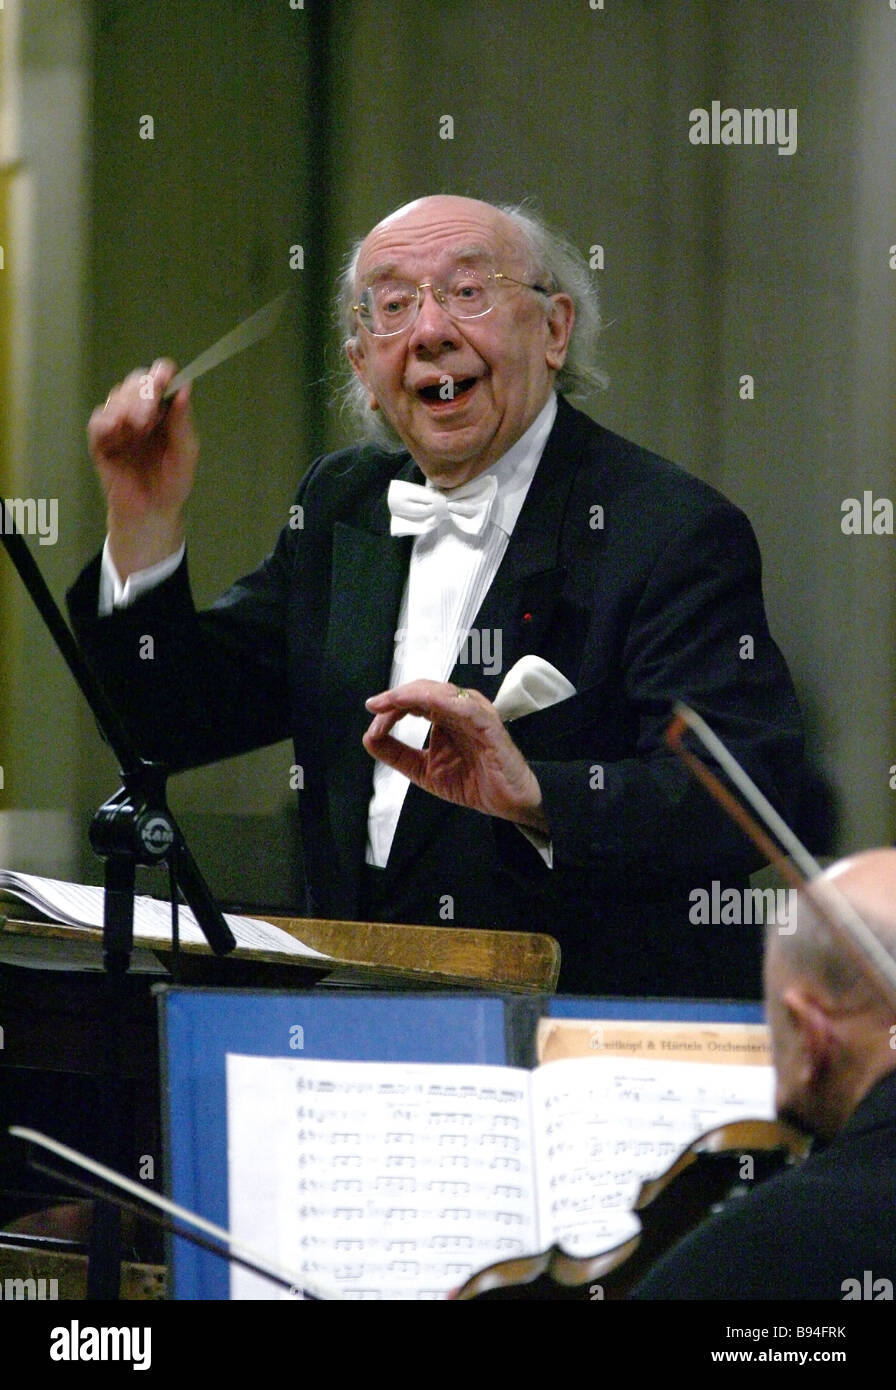 Gennady Rozhdestvensky, conductor and composer: biography, personal life, creativity 54